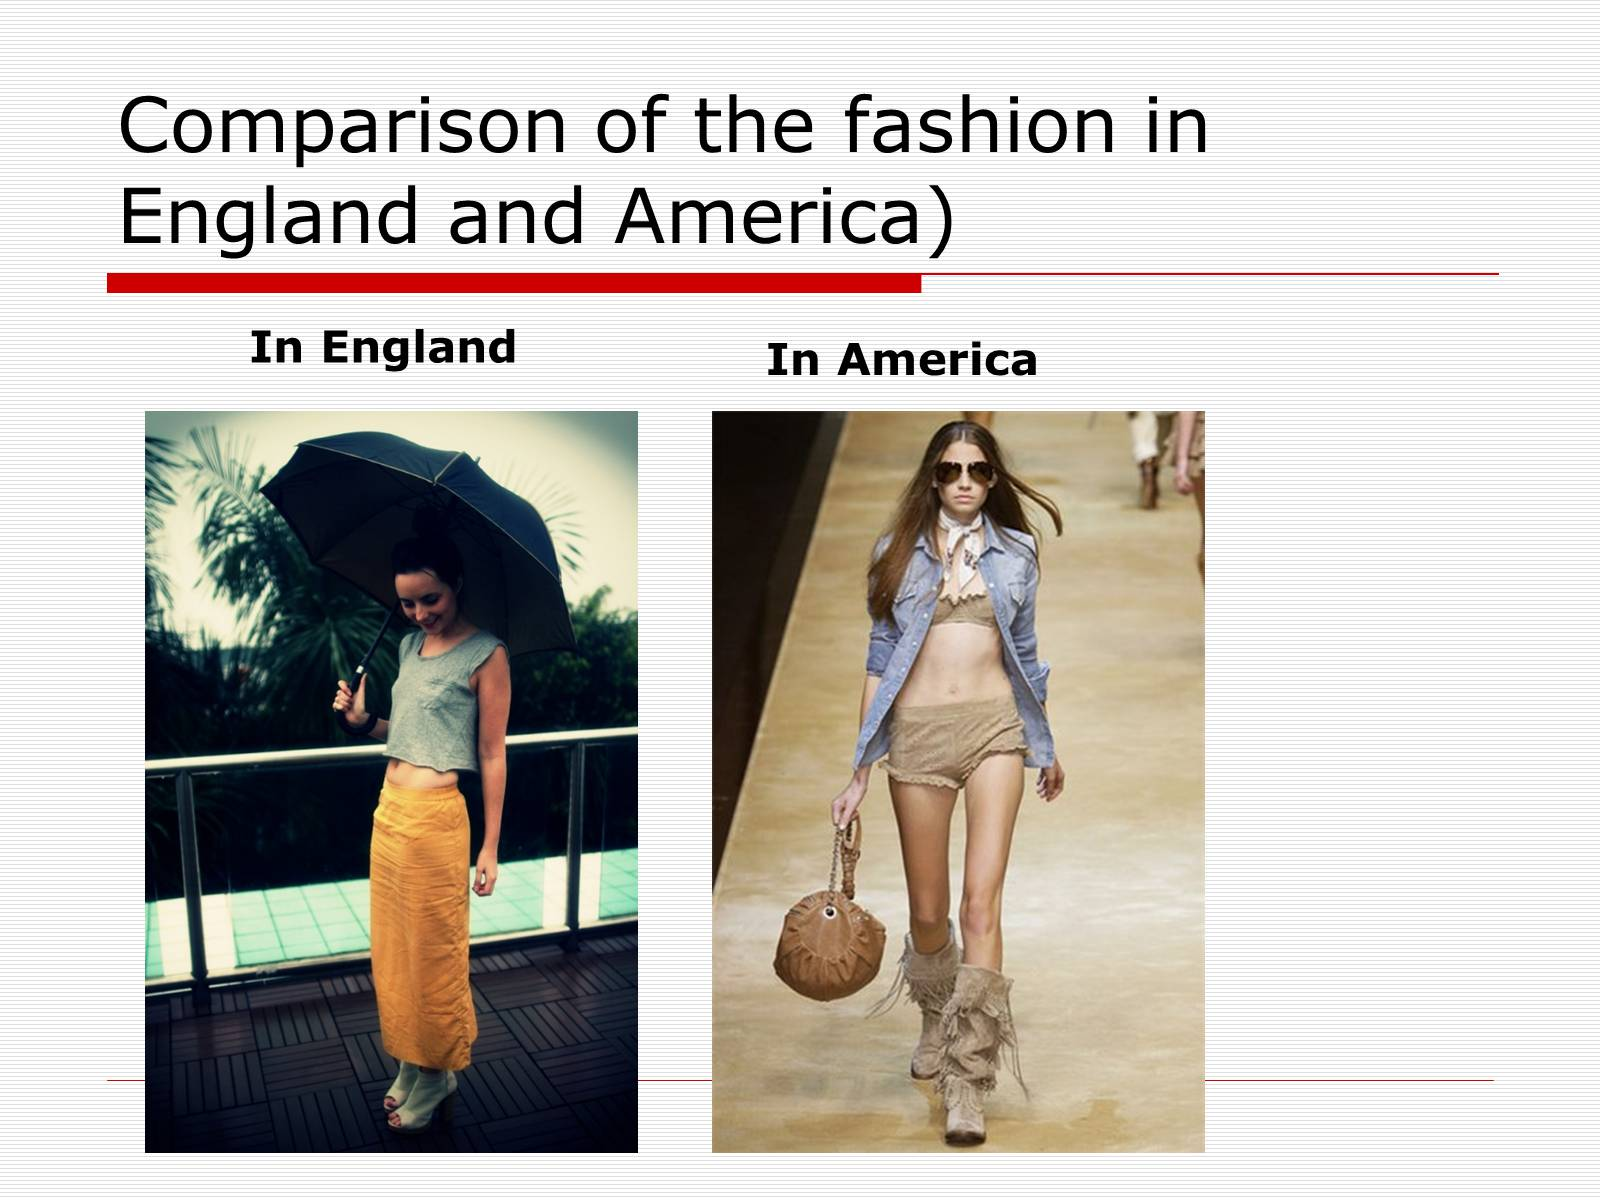 Презентація на тему «Comparison of the fashion in England and America» - Слайд #37